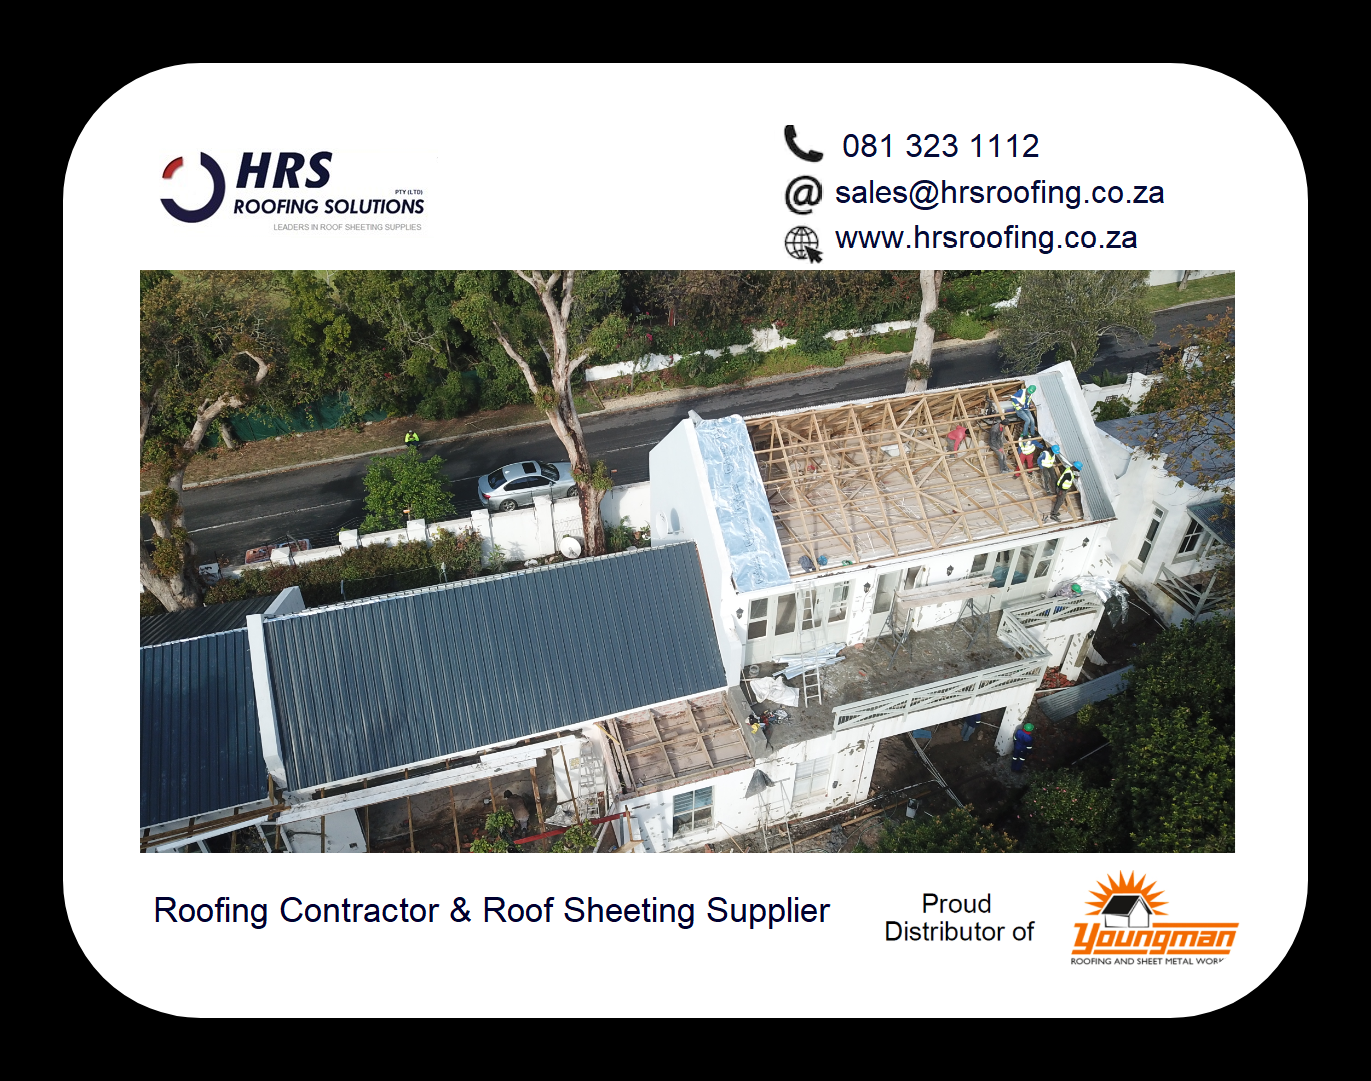 youngman roofing hrs roofing Diamondek 407 roof sheeting suppliers cape Town - Roofing Gallery